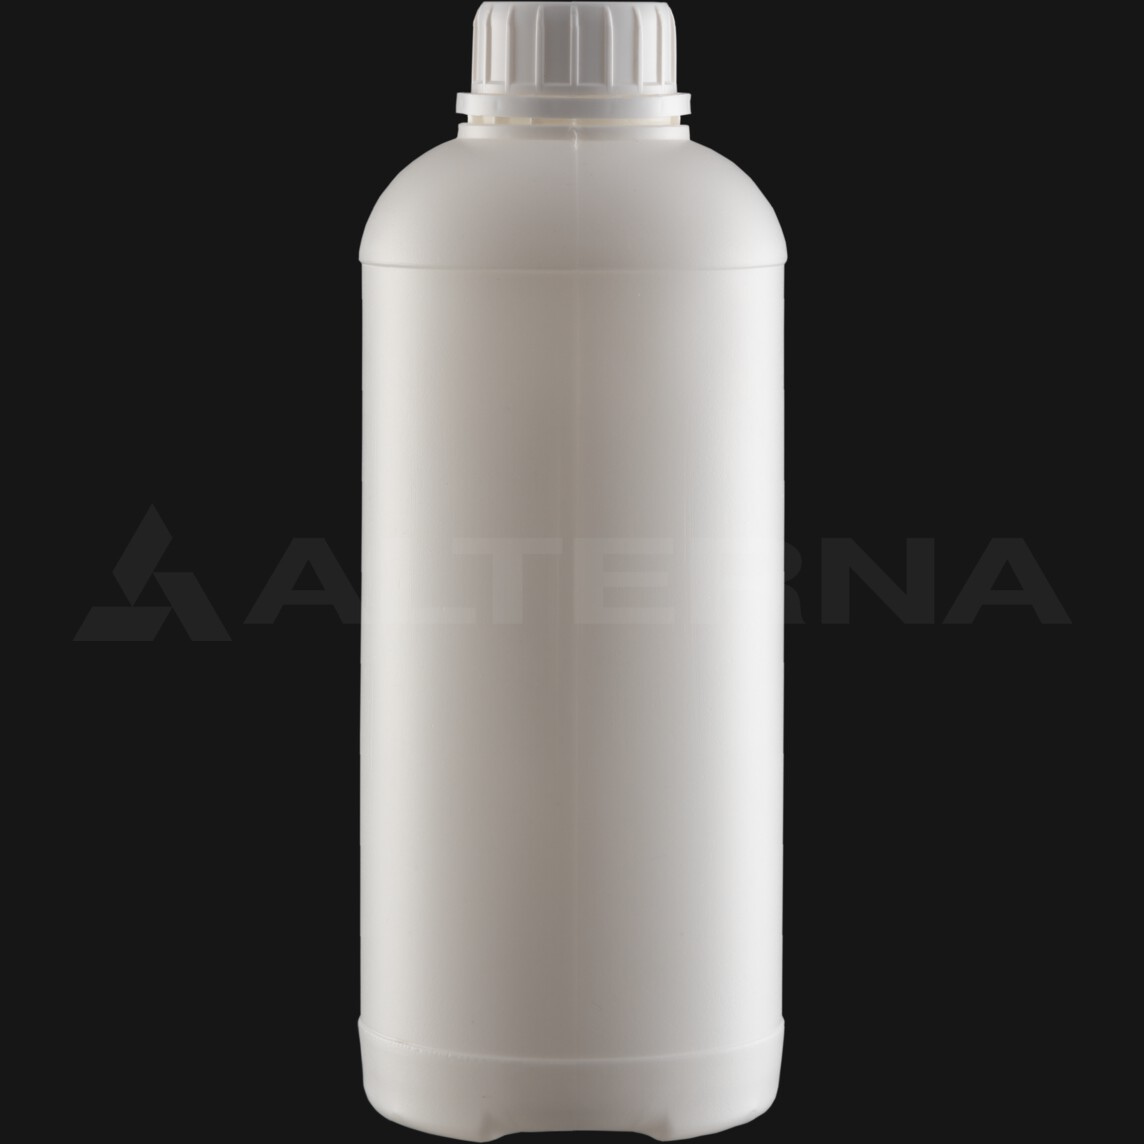 1000 ml HDPE Bottle with 38 mm Foam Seal Secure Cap